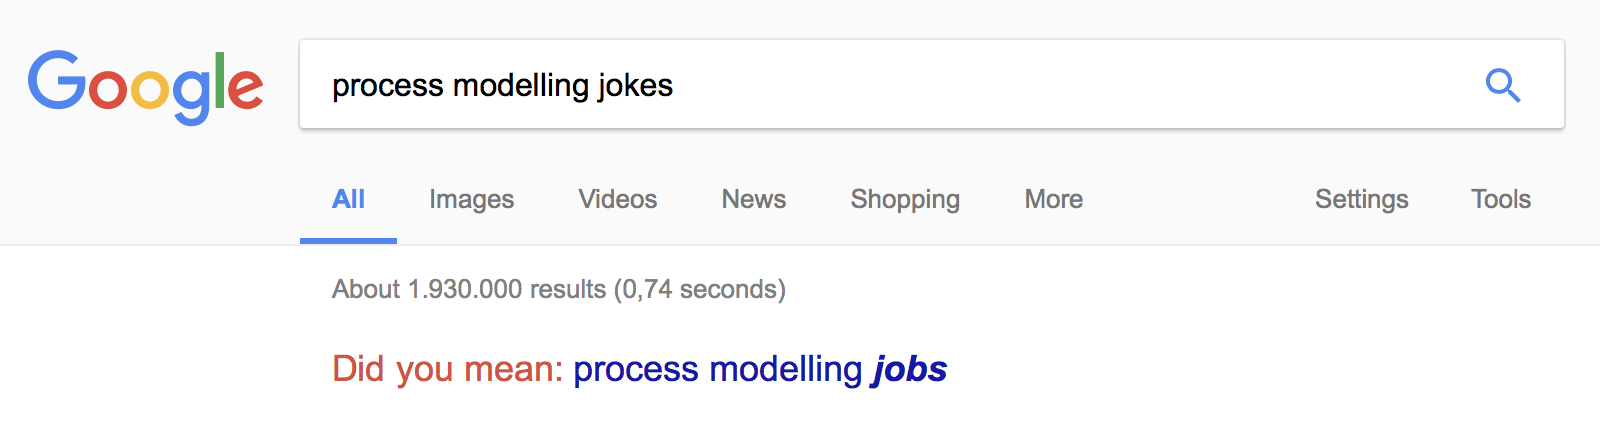 process modelling jokes